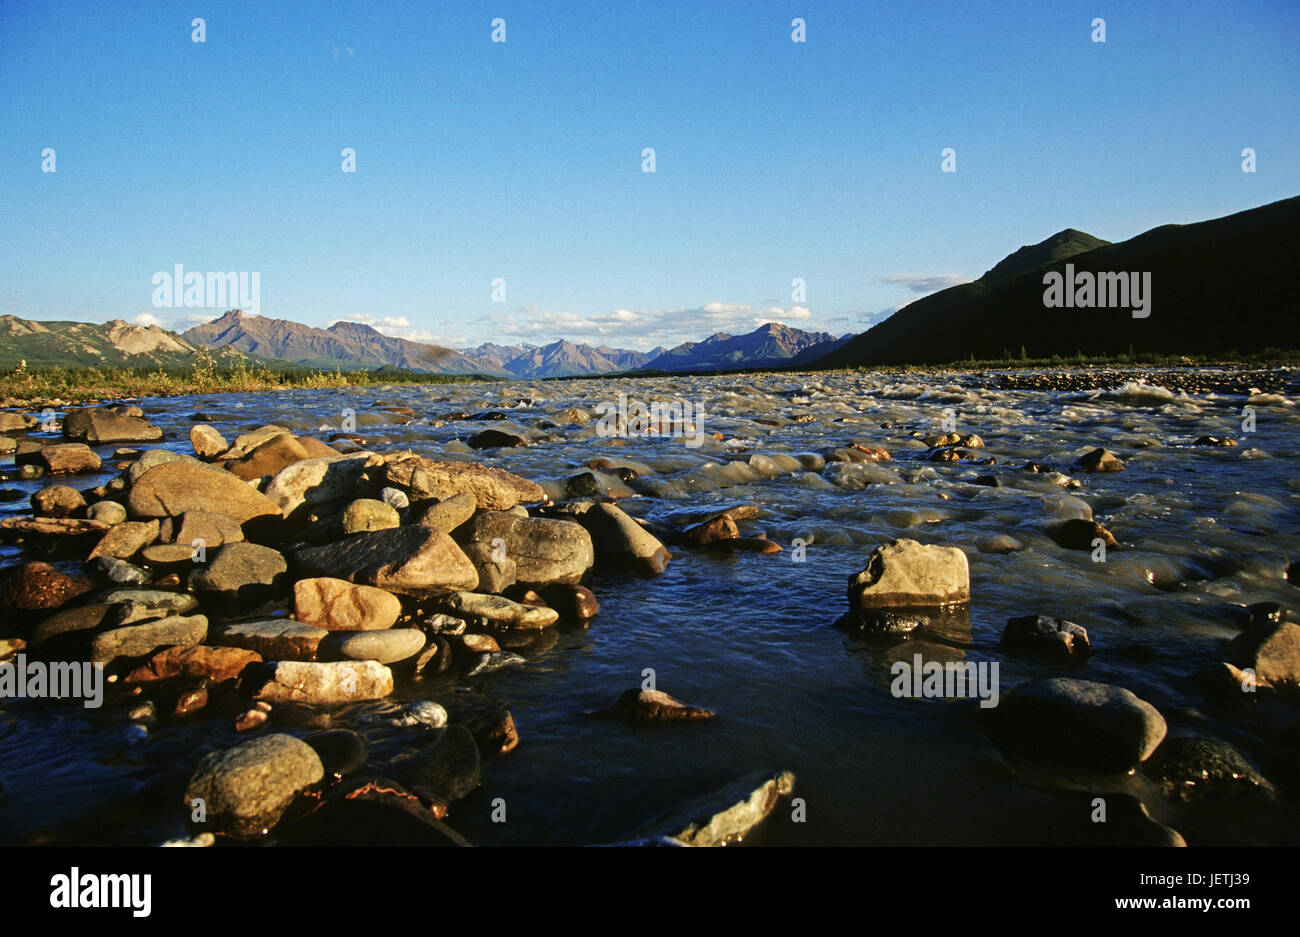 The far branched Teklanika River Alaska to rank, Denali N.P flows from the mountains., Alaska, Der weit verzweigte - Stock Image